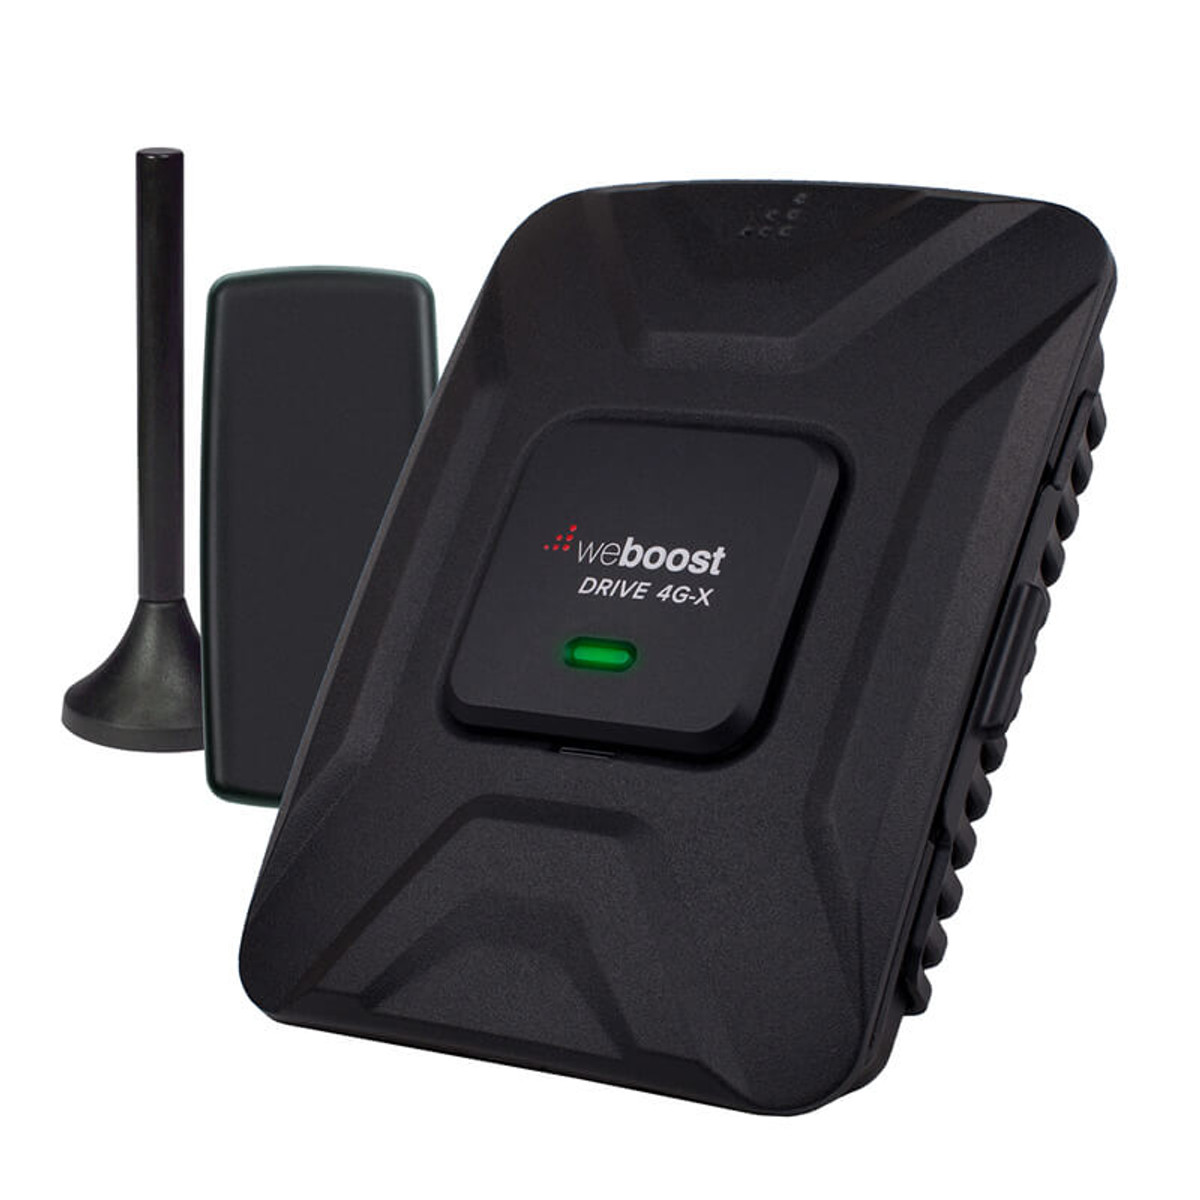 weBoost Drive 4G-X Auto Cell Phone Signal Booster | 470510